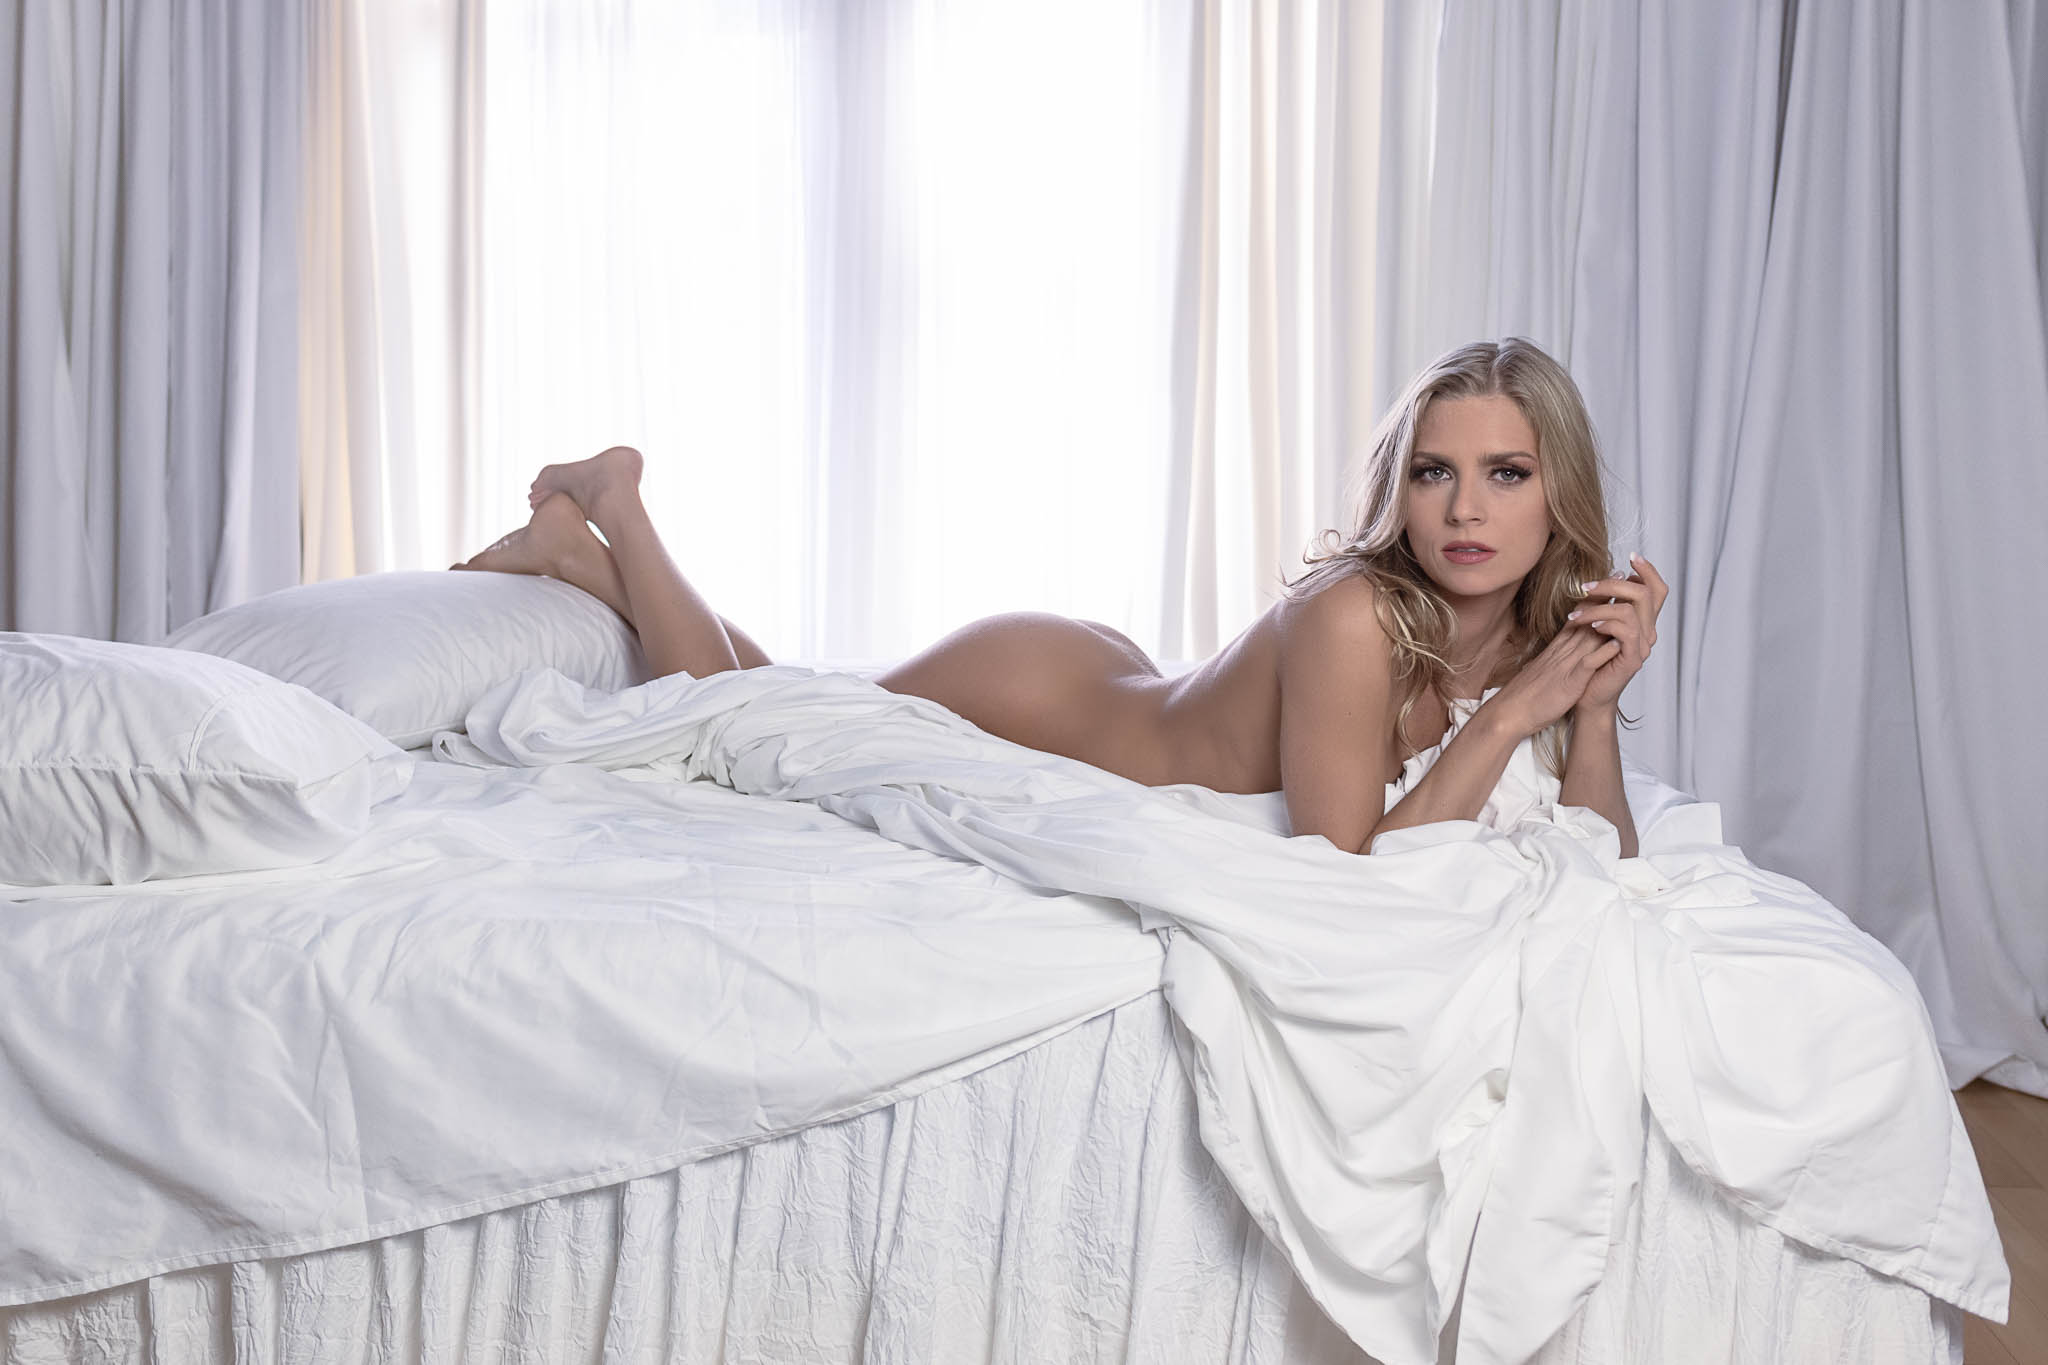 Houston Boudoir Photos Featuring Nudity with Class